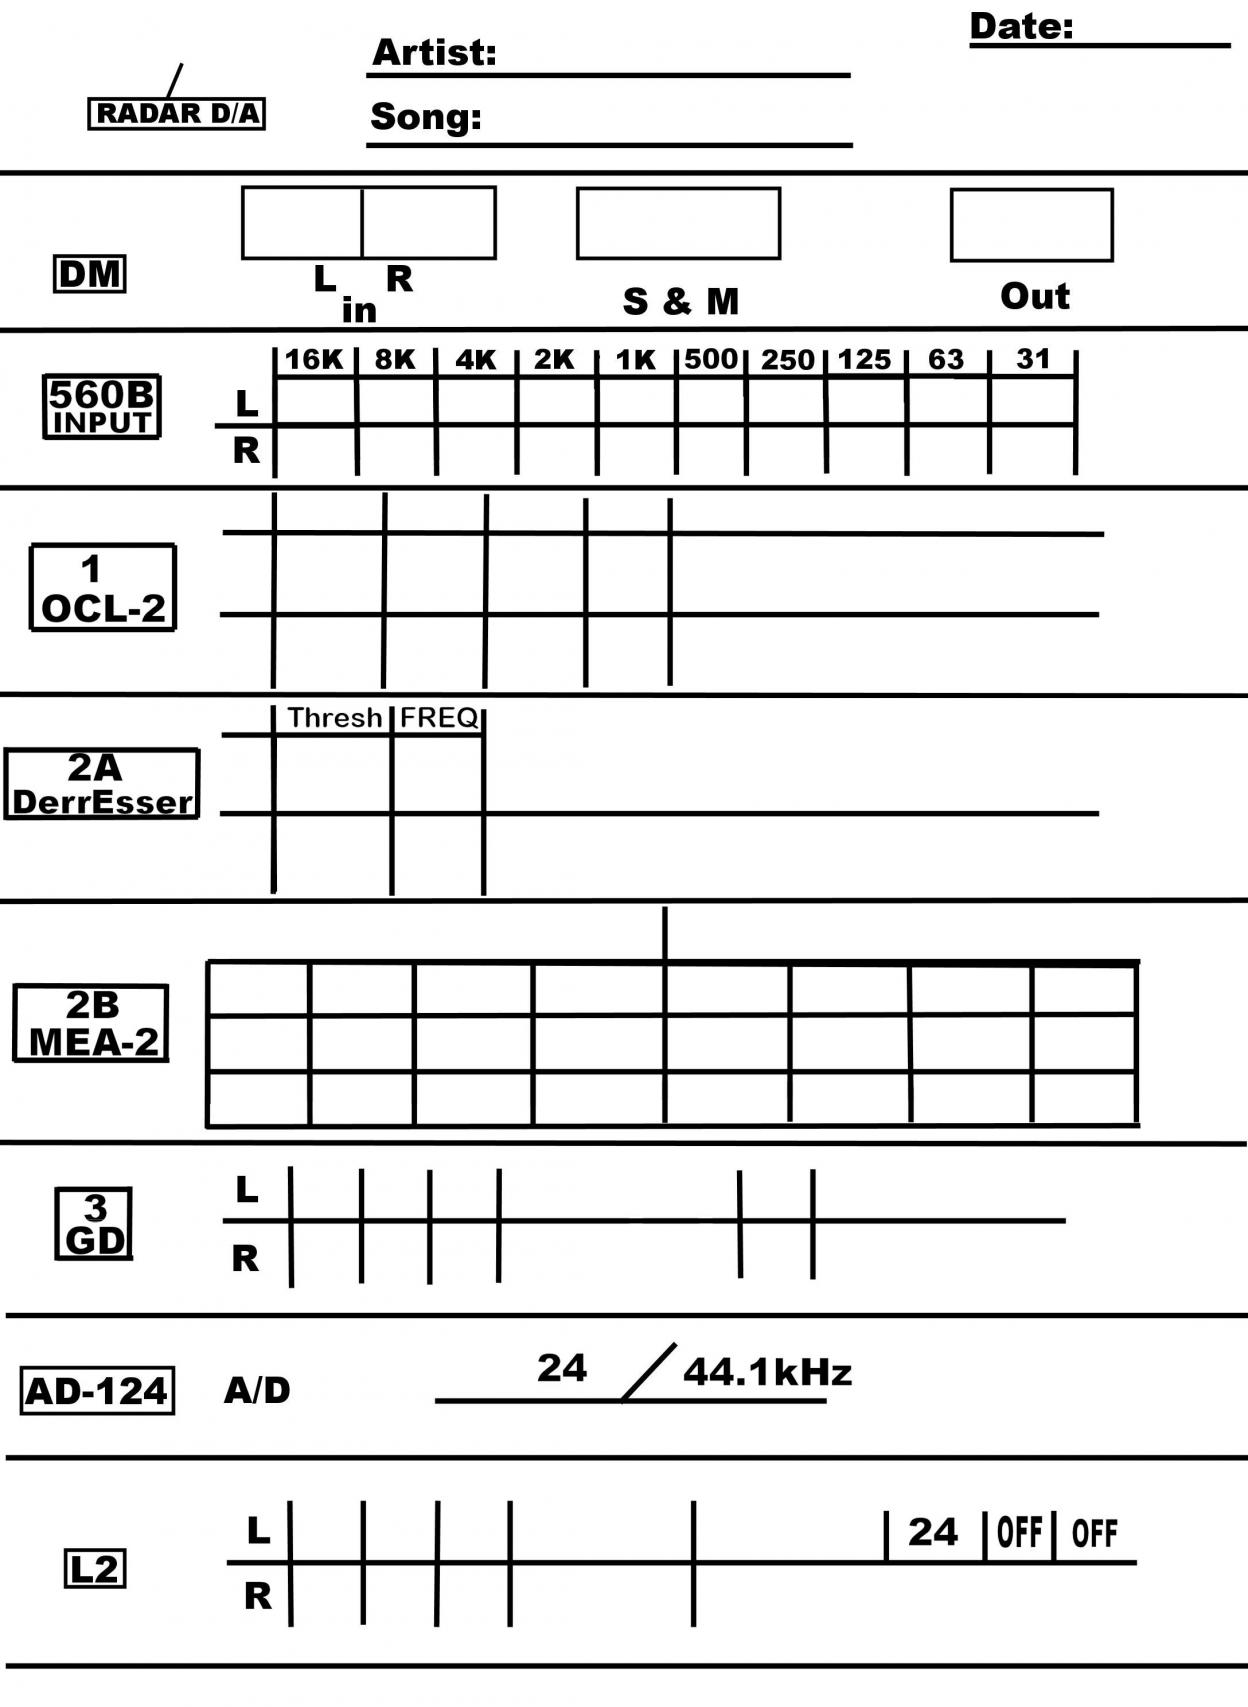 Does Anyone Still Write Up Track Sheets